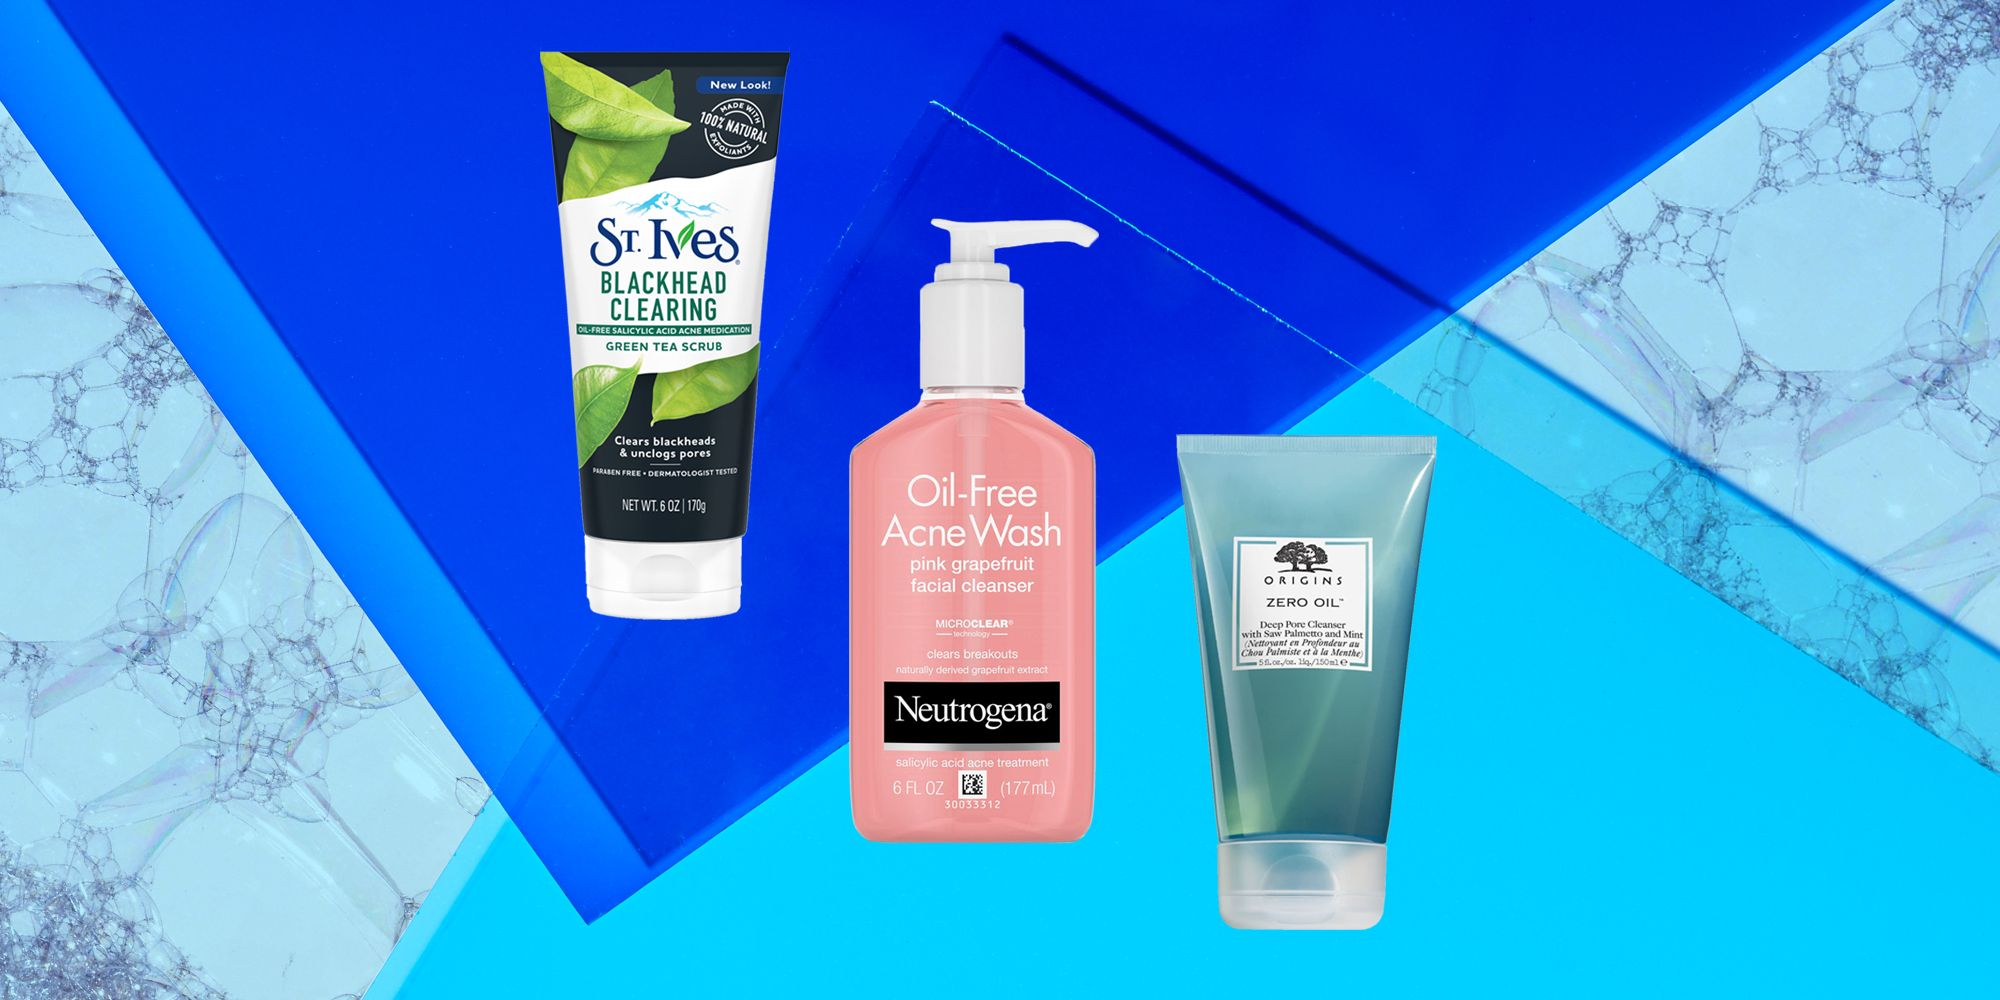 10 Best Acne Face Washes of 2019, According to Dermatologists